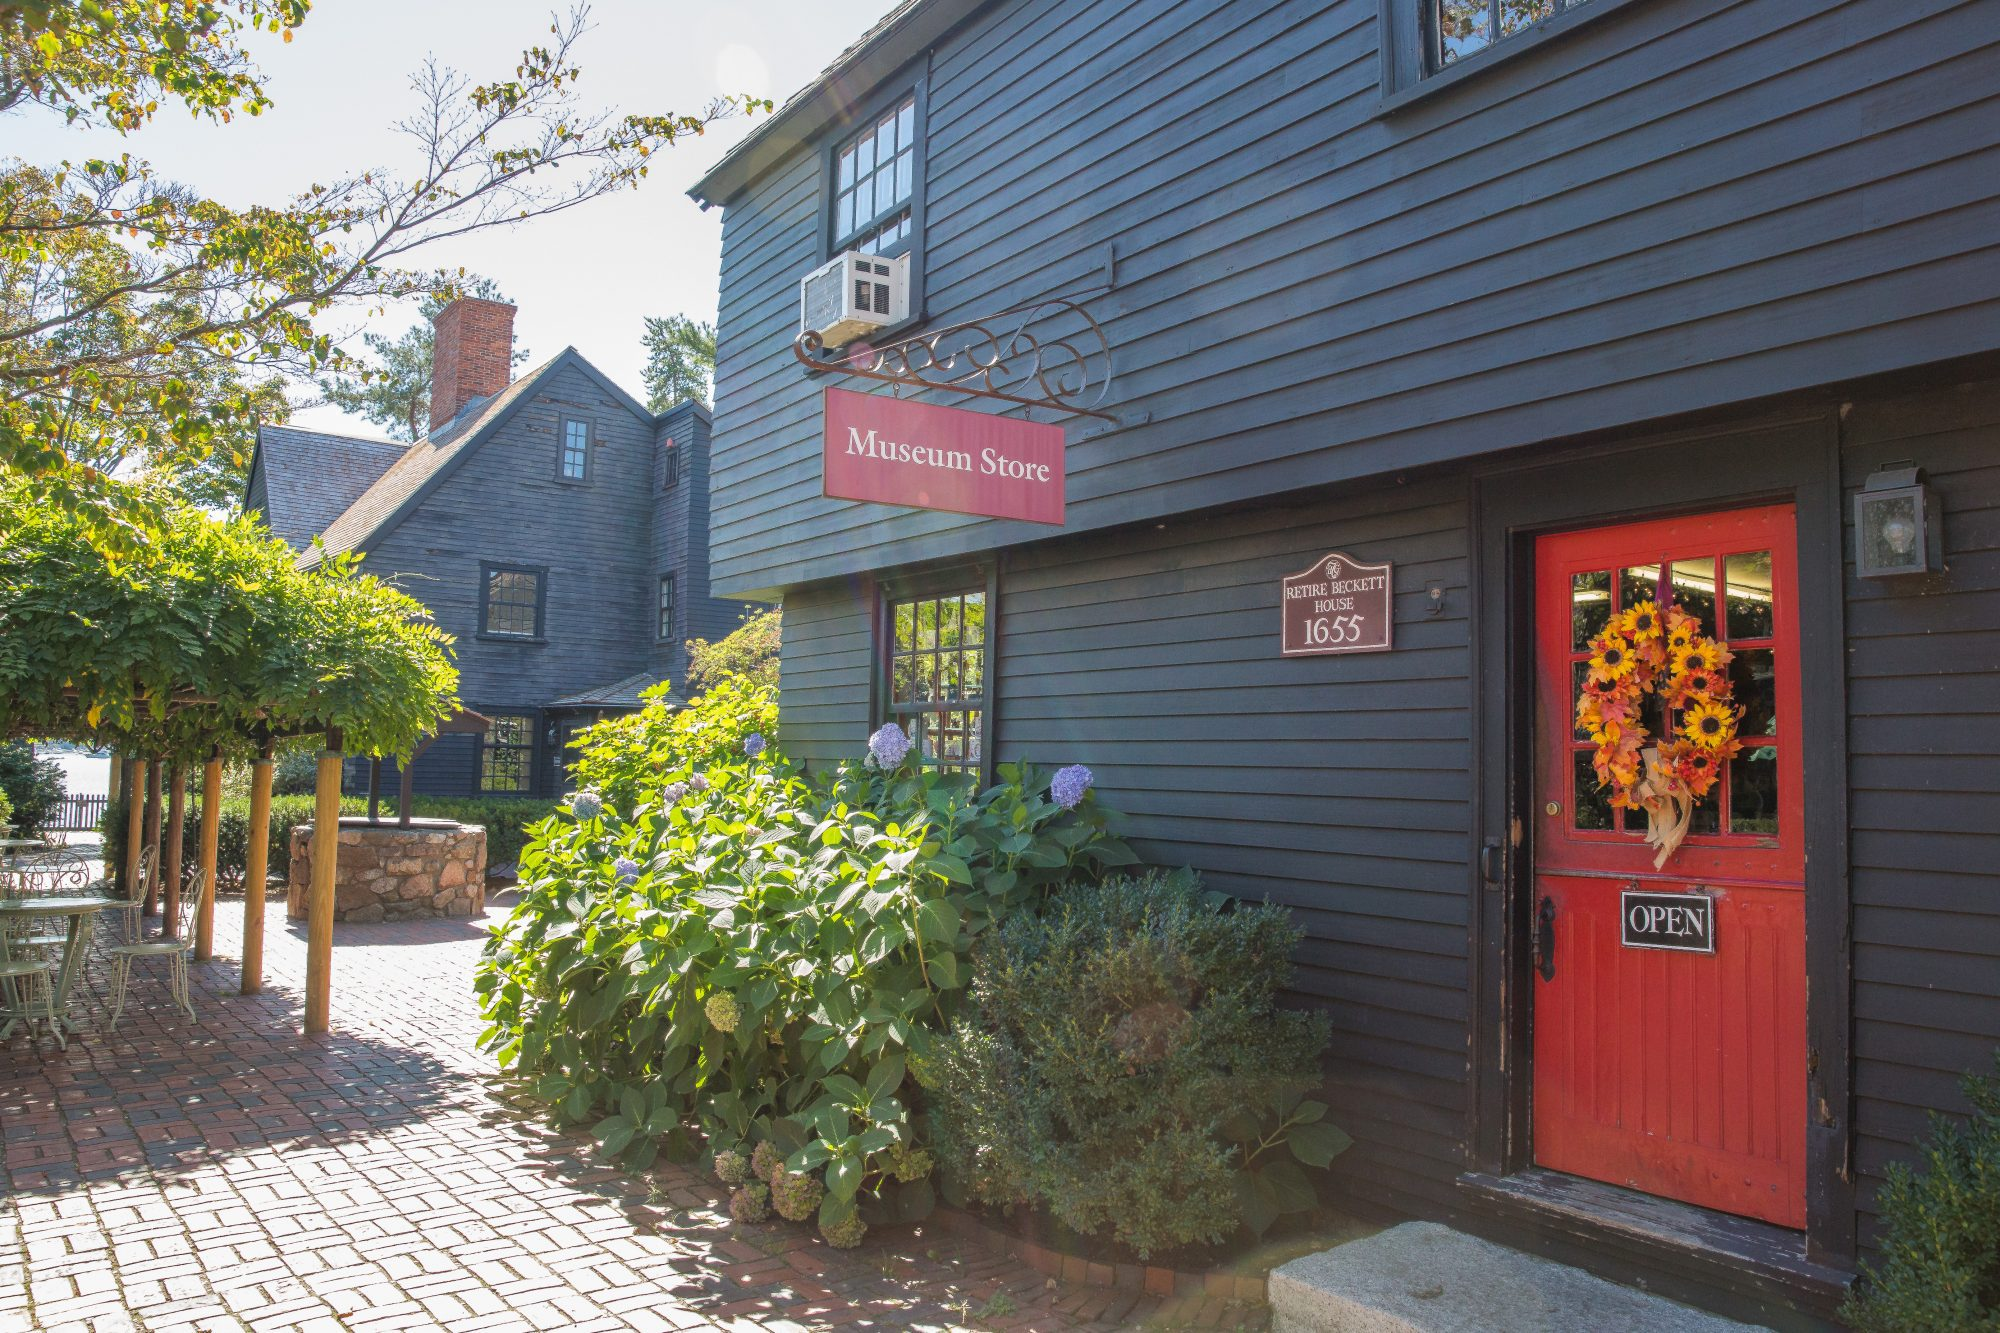 The House of the Seven Gables Museum Store